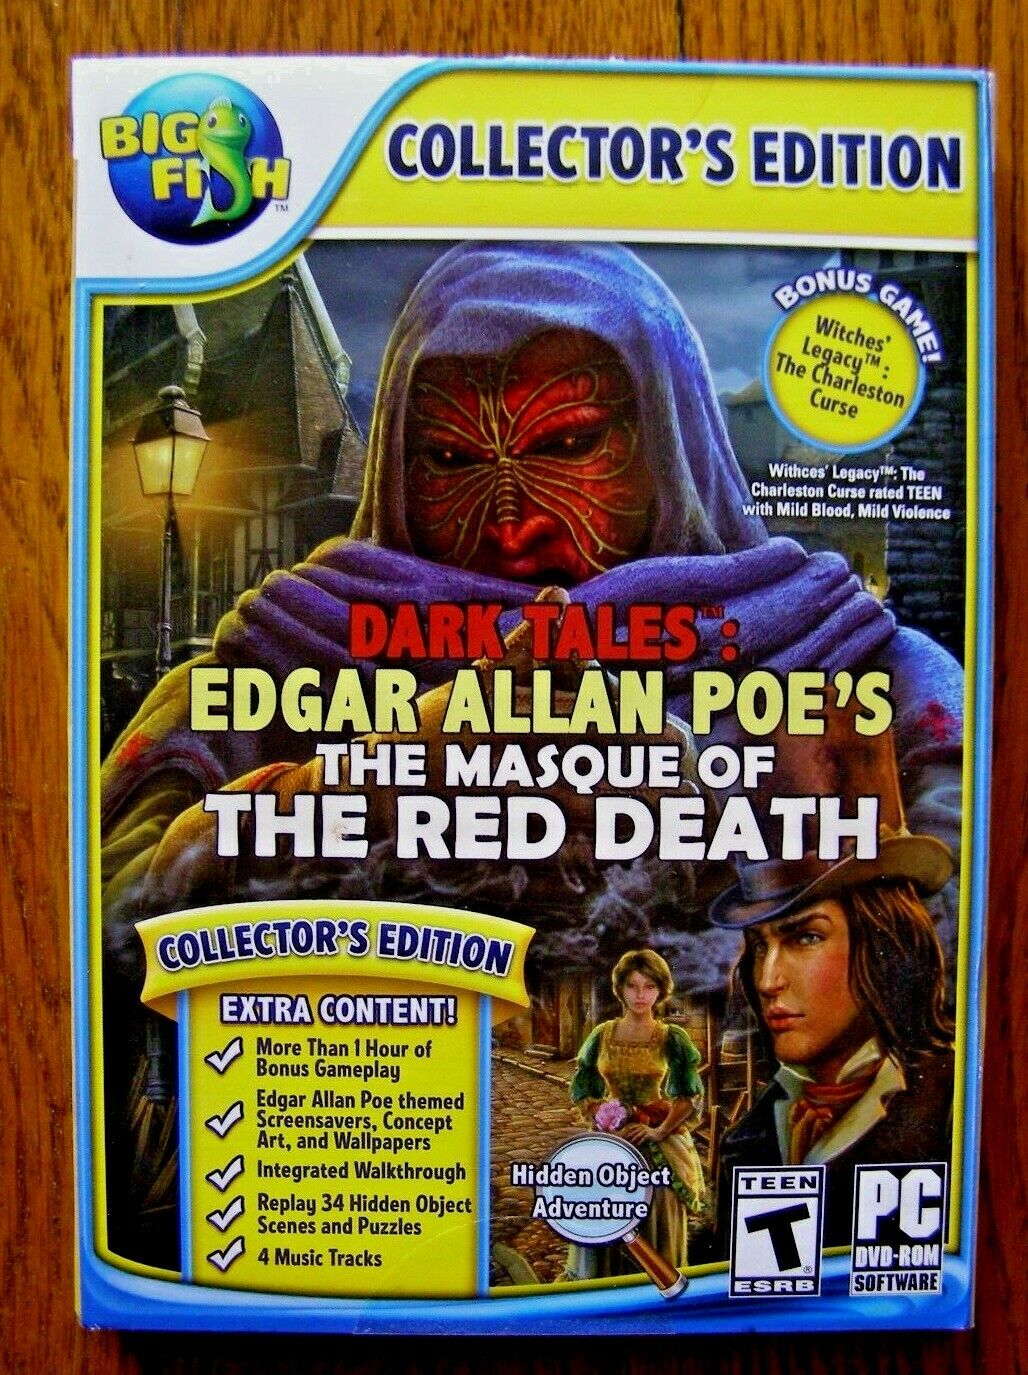 Dark Tales Edgar Allan Poe The Masque Of The Red Death PC Free Shipping - $7.00